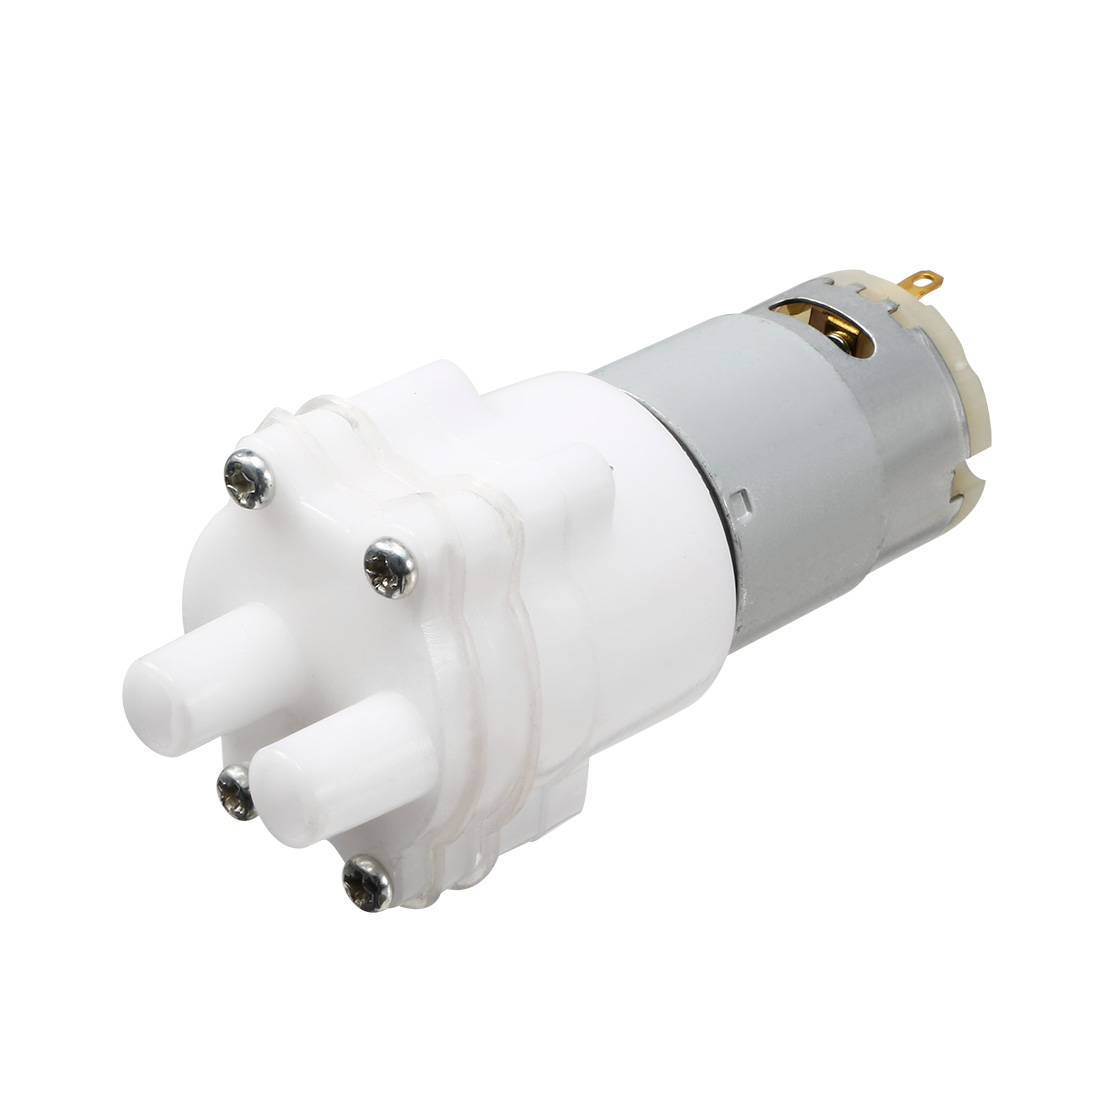 DC-12V-Volt-Speed-1-5-2-L-Min-Cylinder-Shape-Magnetic-Water-Pump-Motor